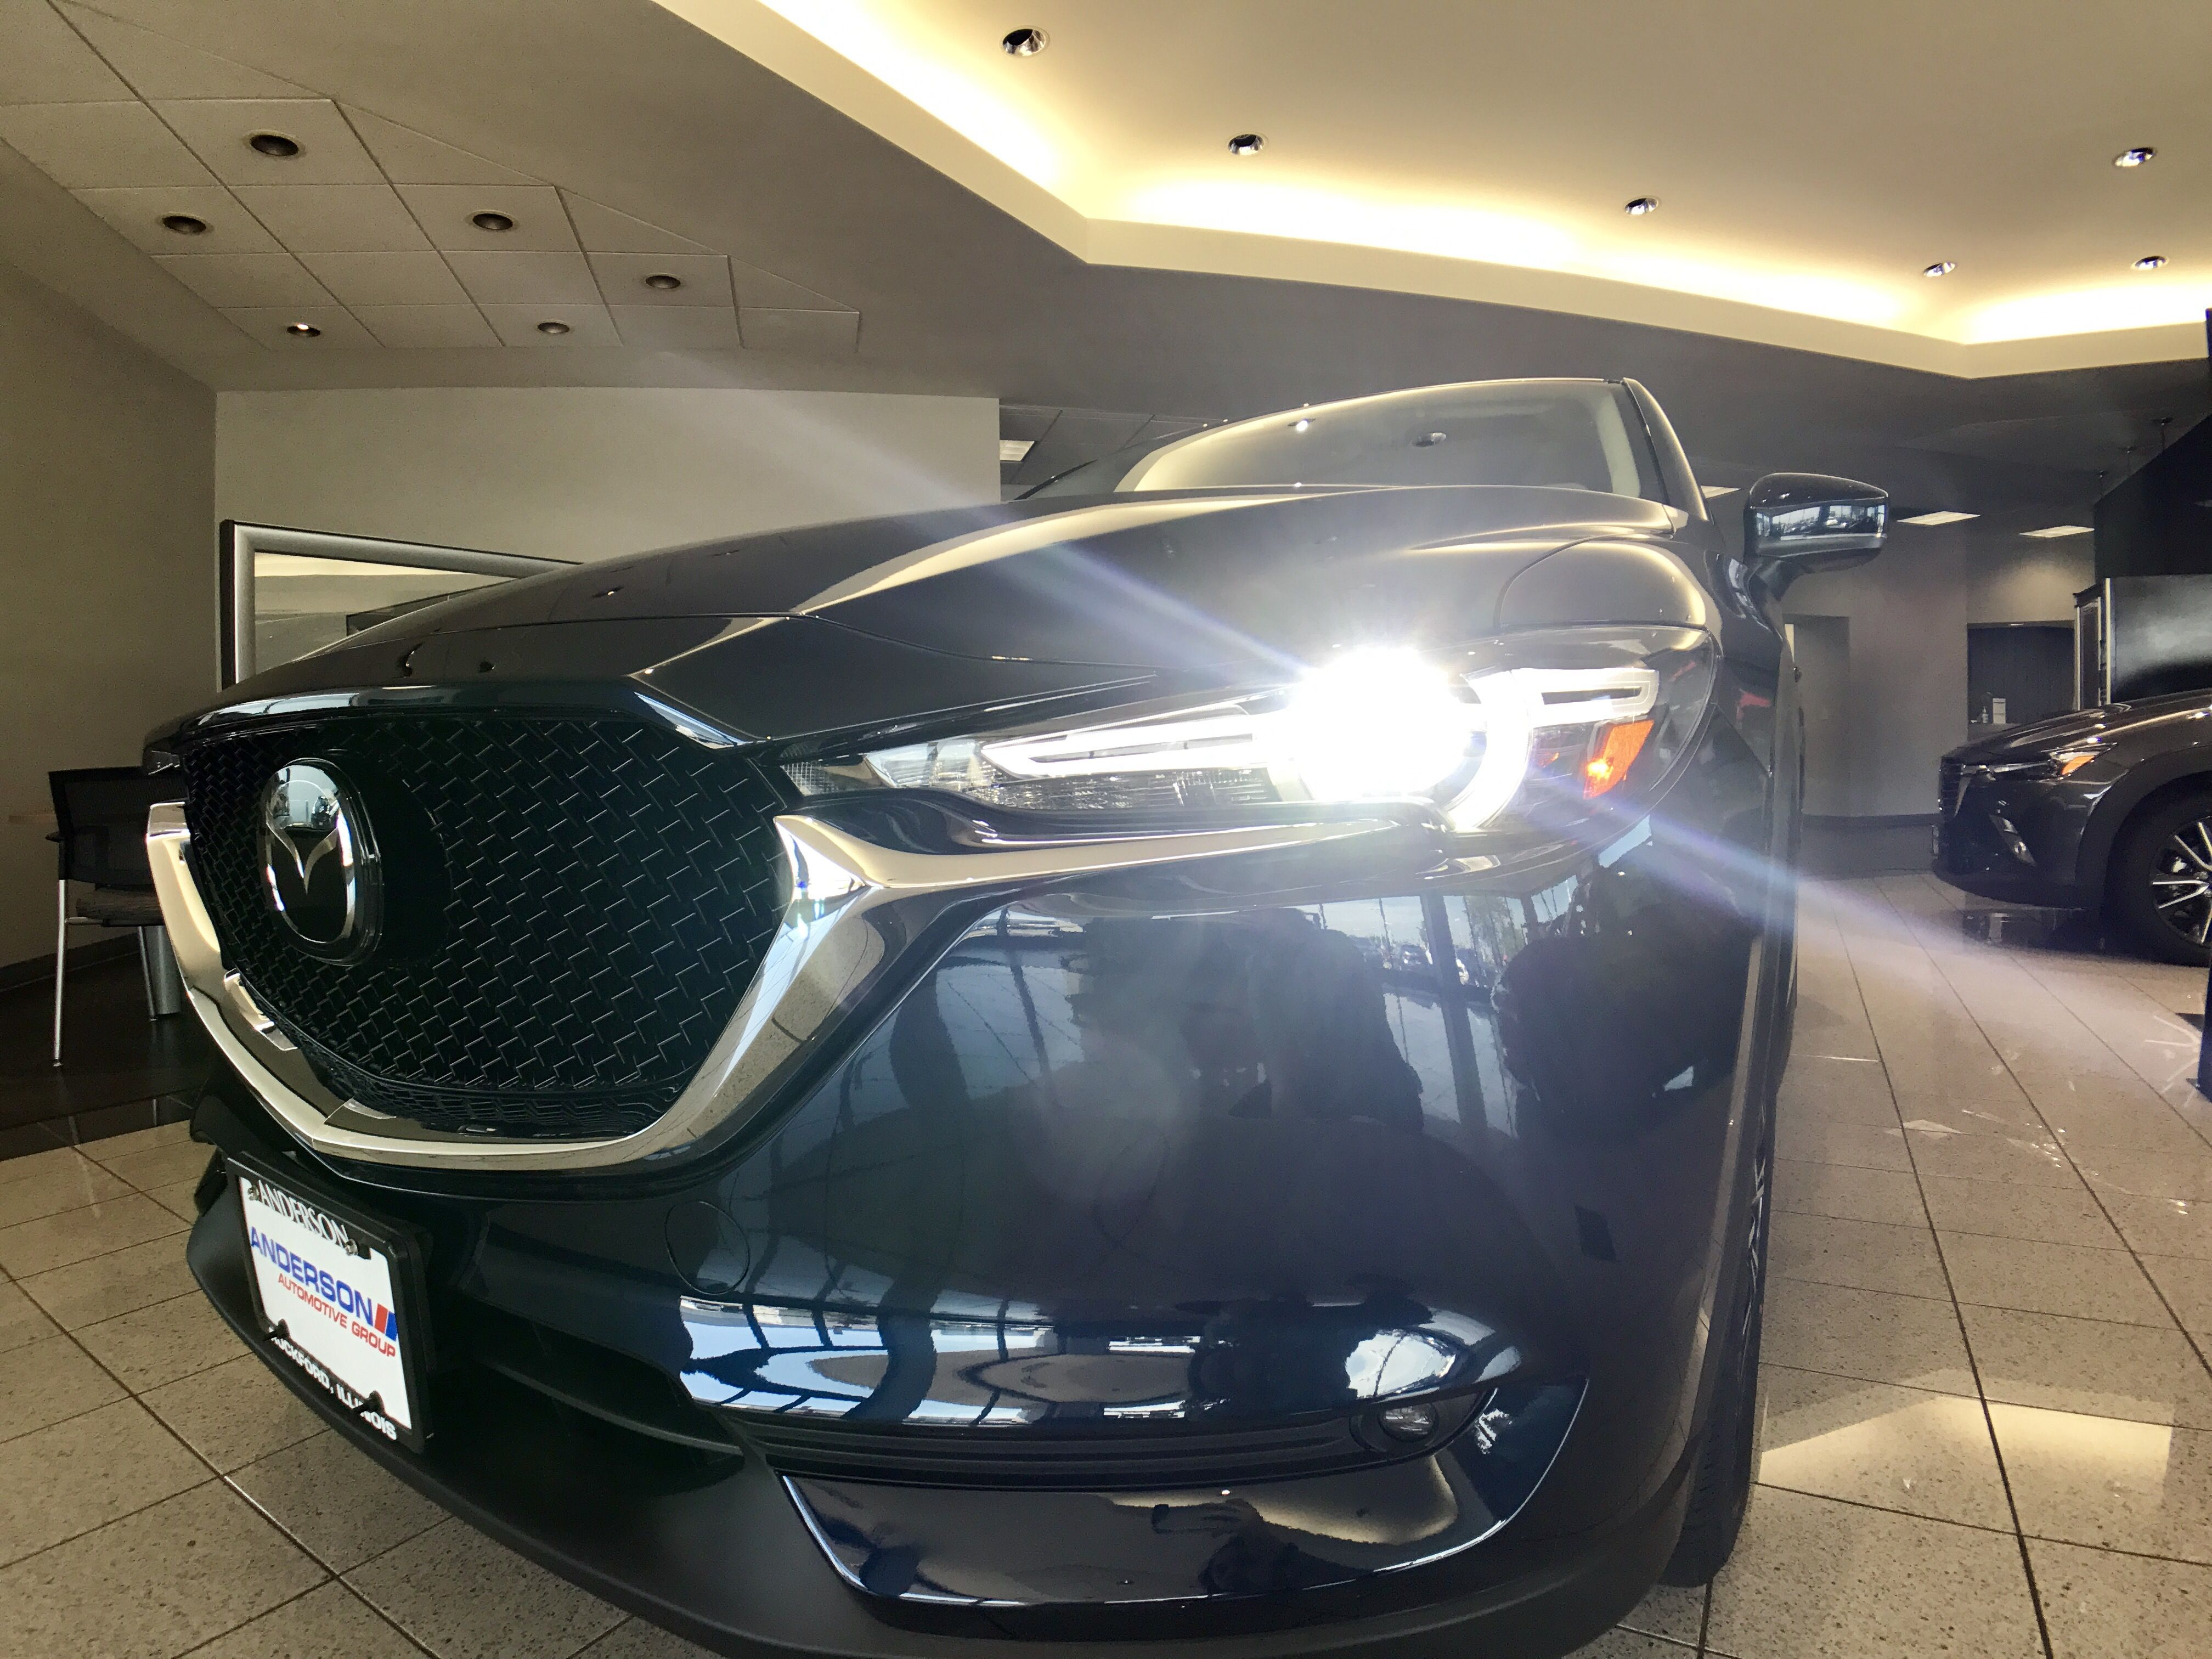 Led Headlights Make You Stand Out In The Mazda Cx 5 Anderson Mazda Rockford Il Mazda Led Headlights Rockford